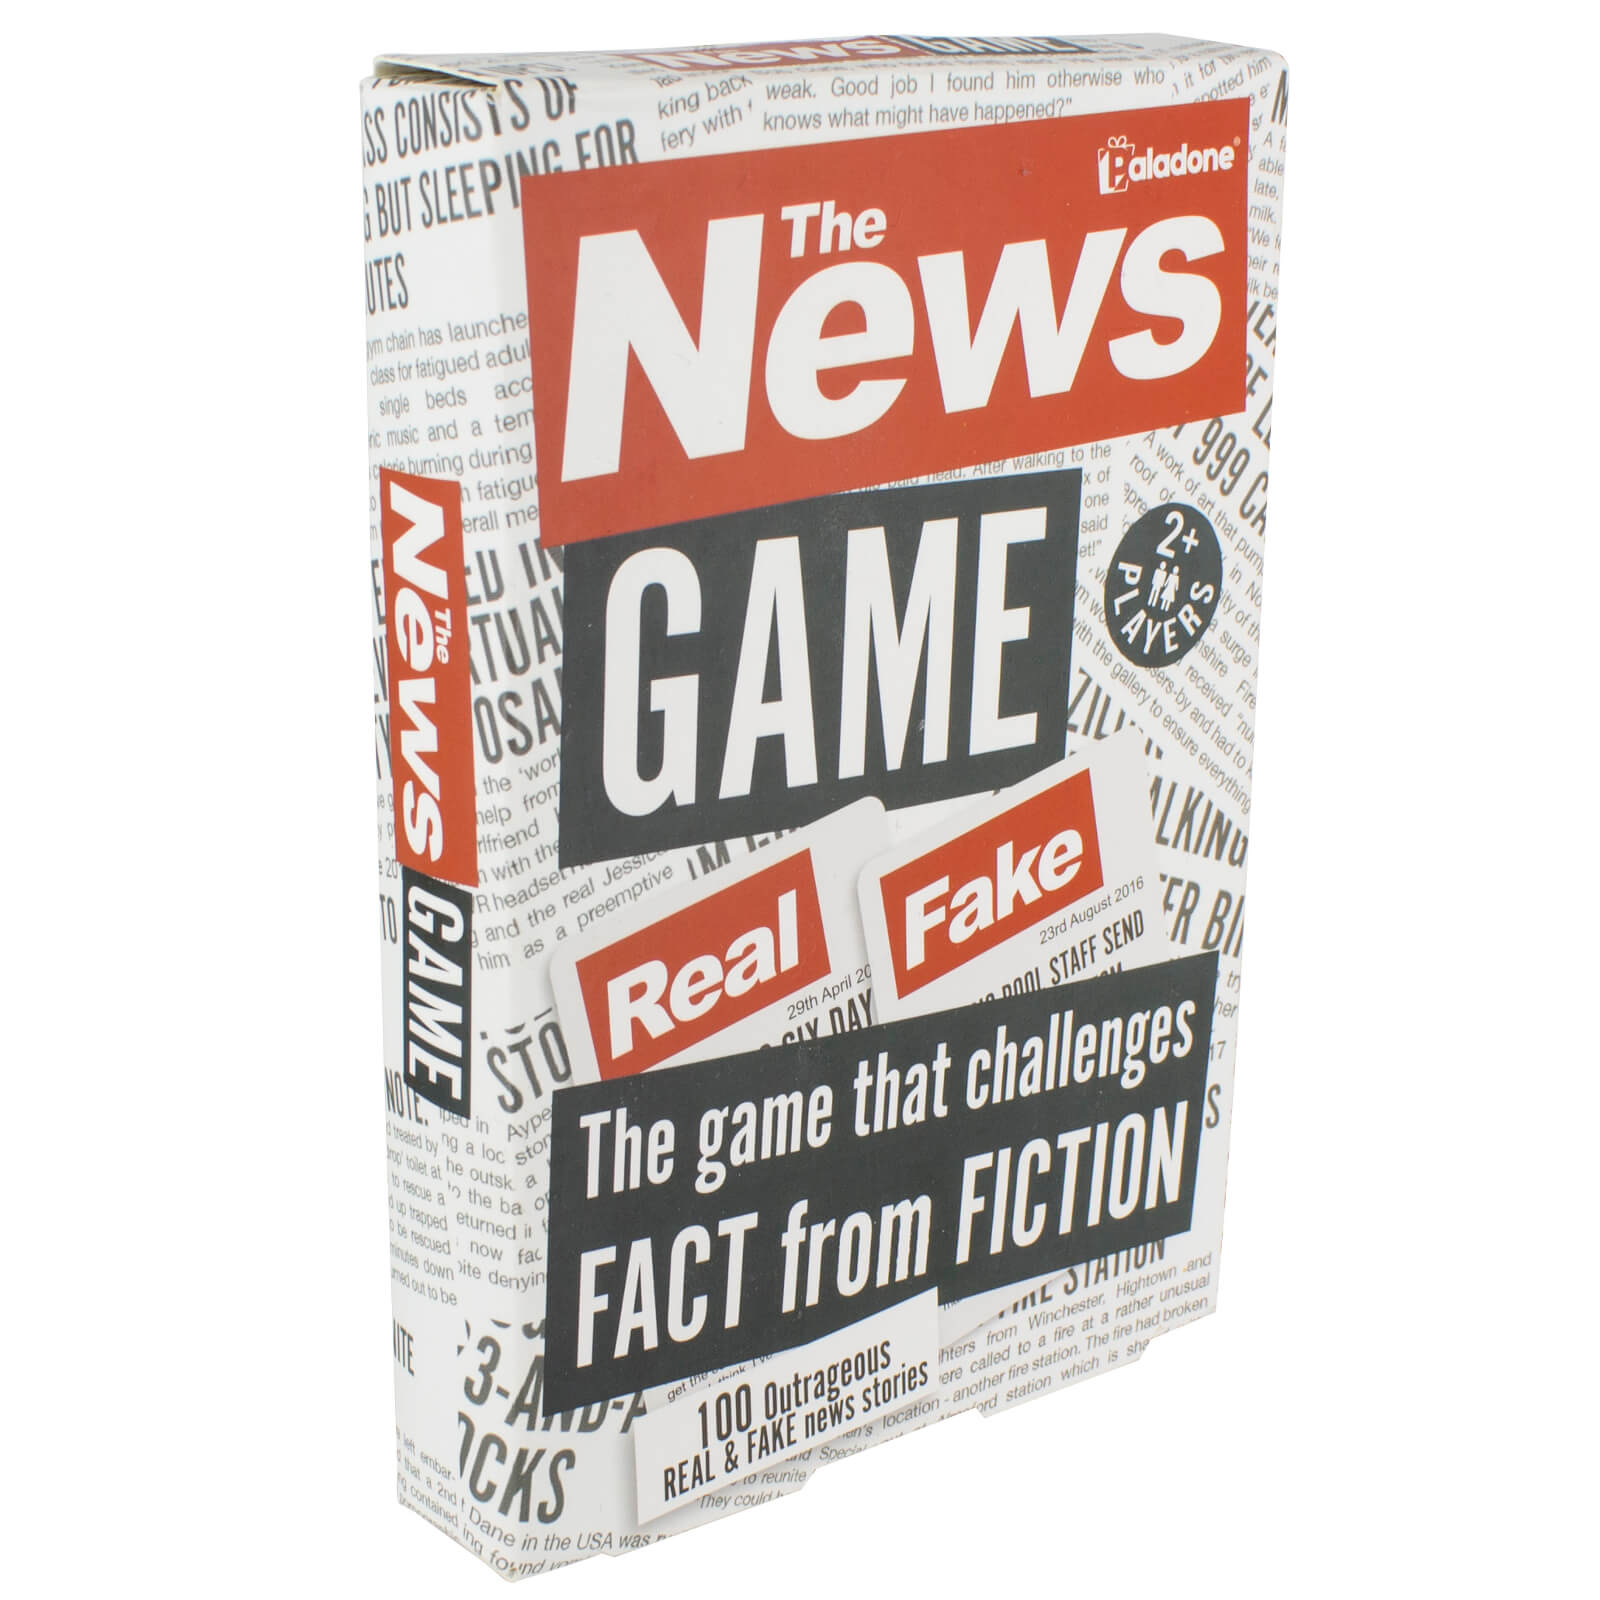 Image of The News Game